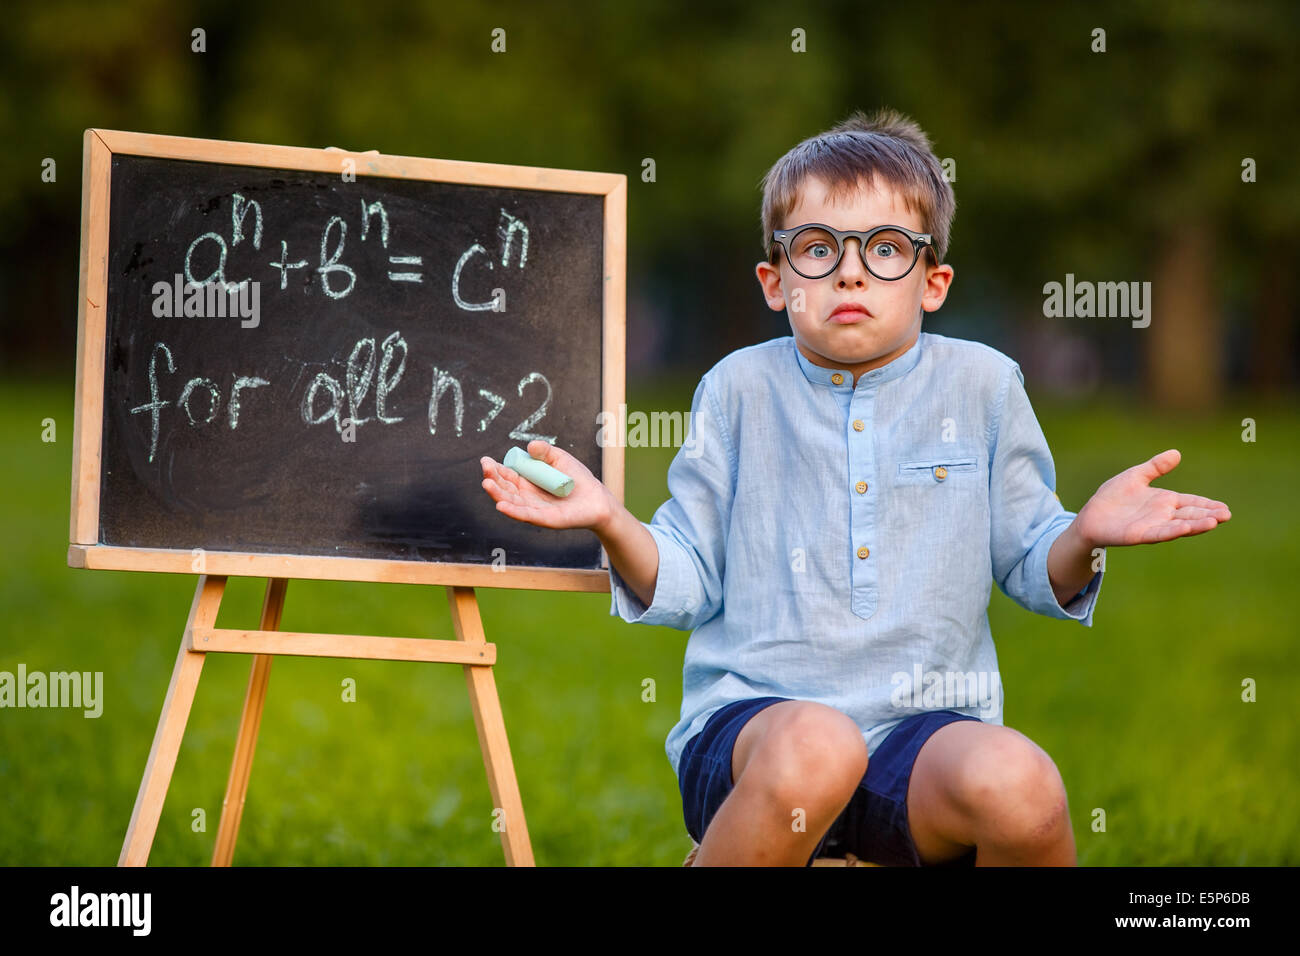 Cute little confused student shrugging his shoulders has no answer, thinking, puzzled - Stock Image